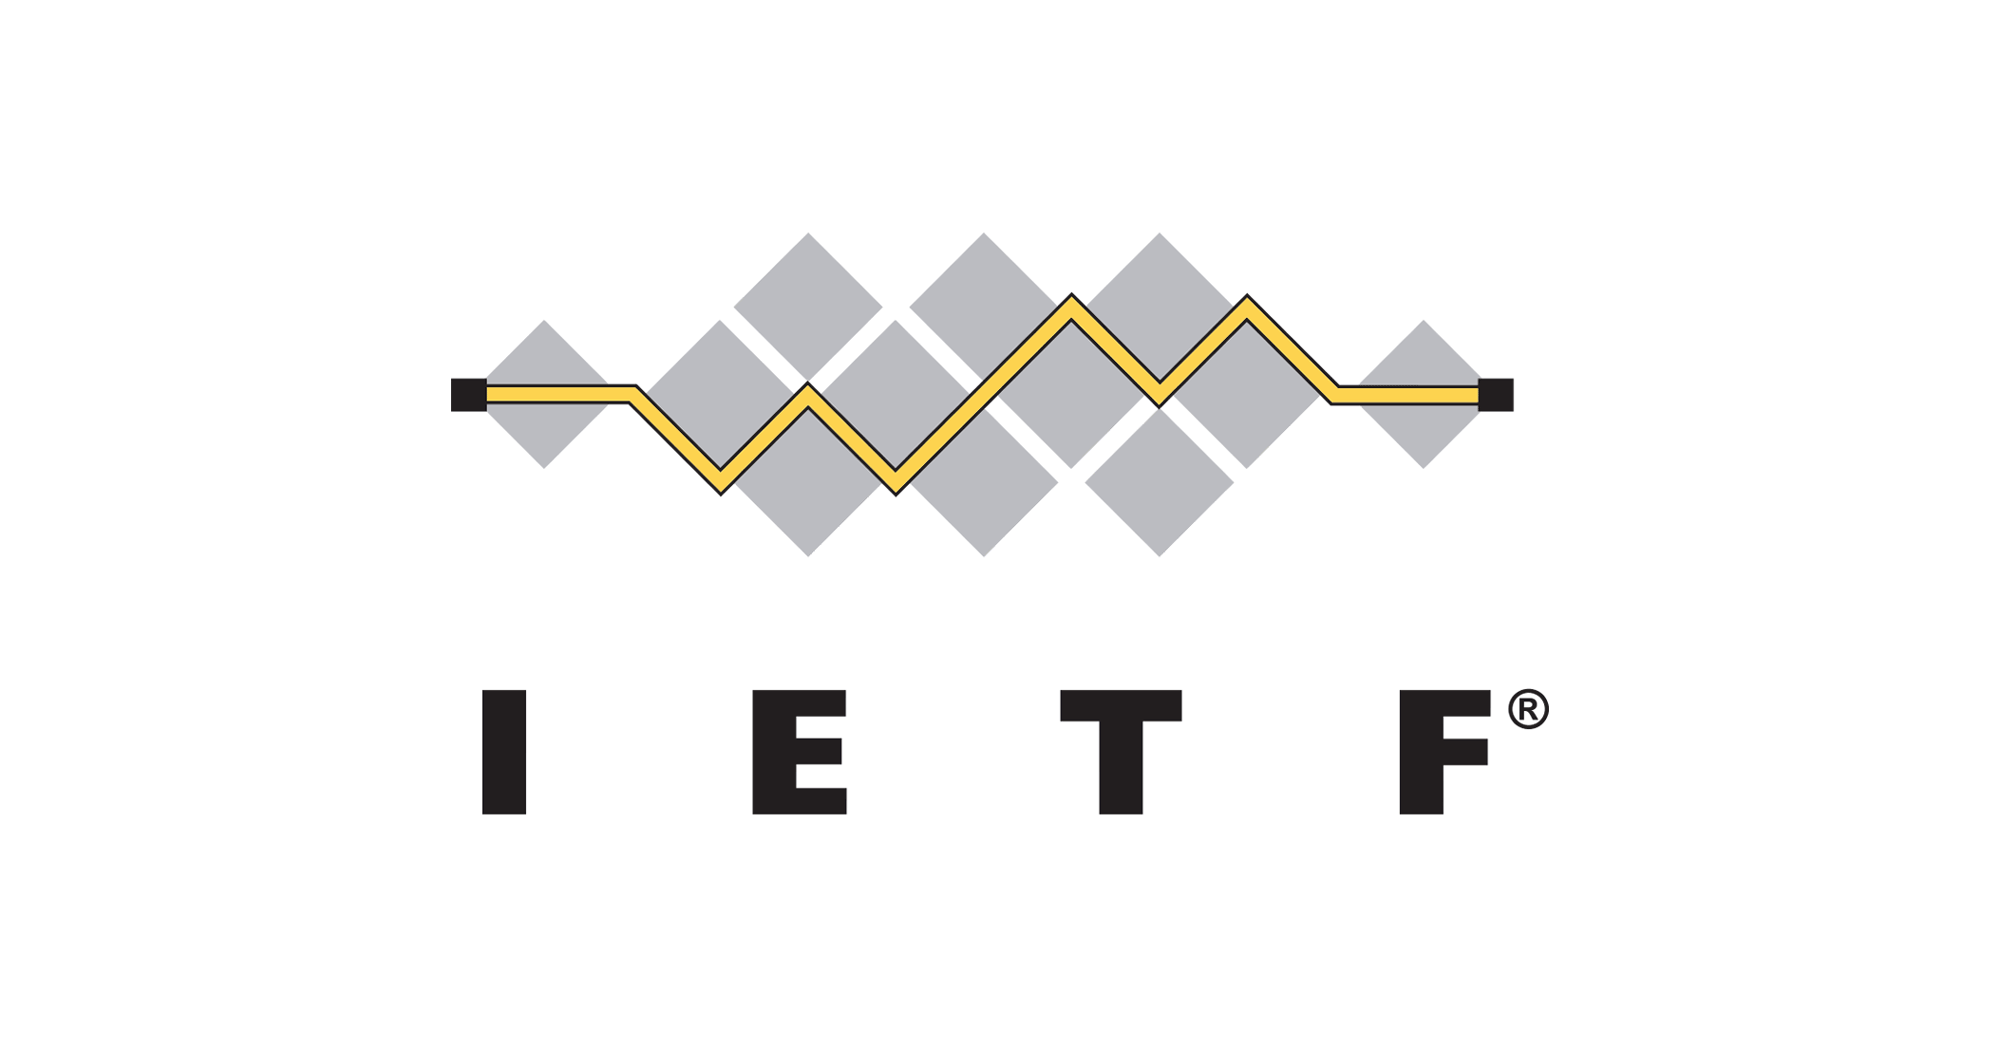 Pushing Internet Standards Governing Body IETF to Tackle Discriminatory and Exclusionary Terminology - Center for Democracy and Technology